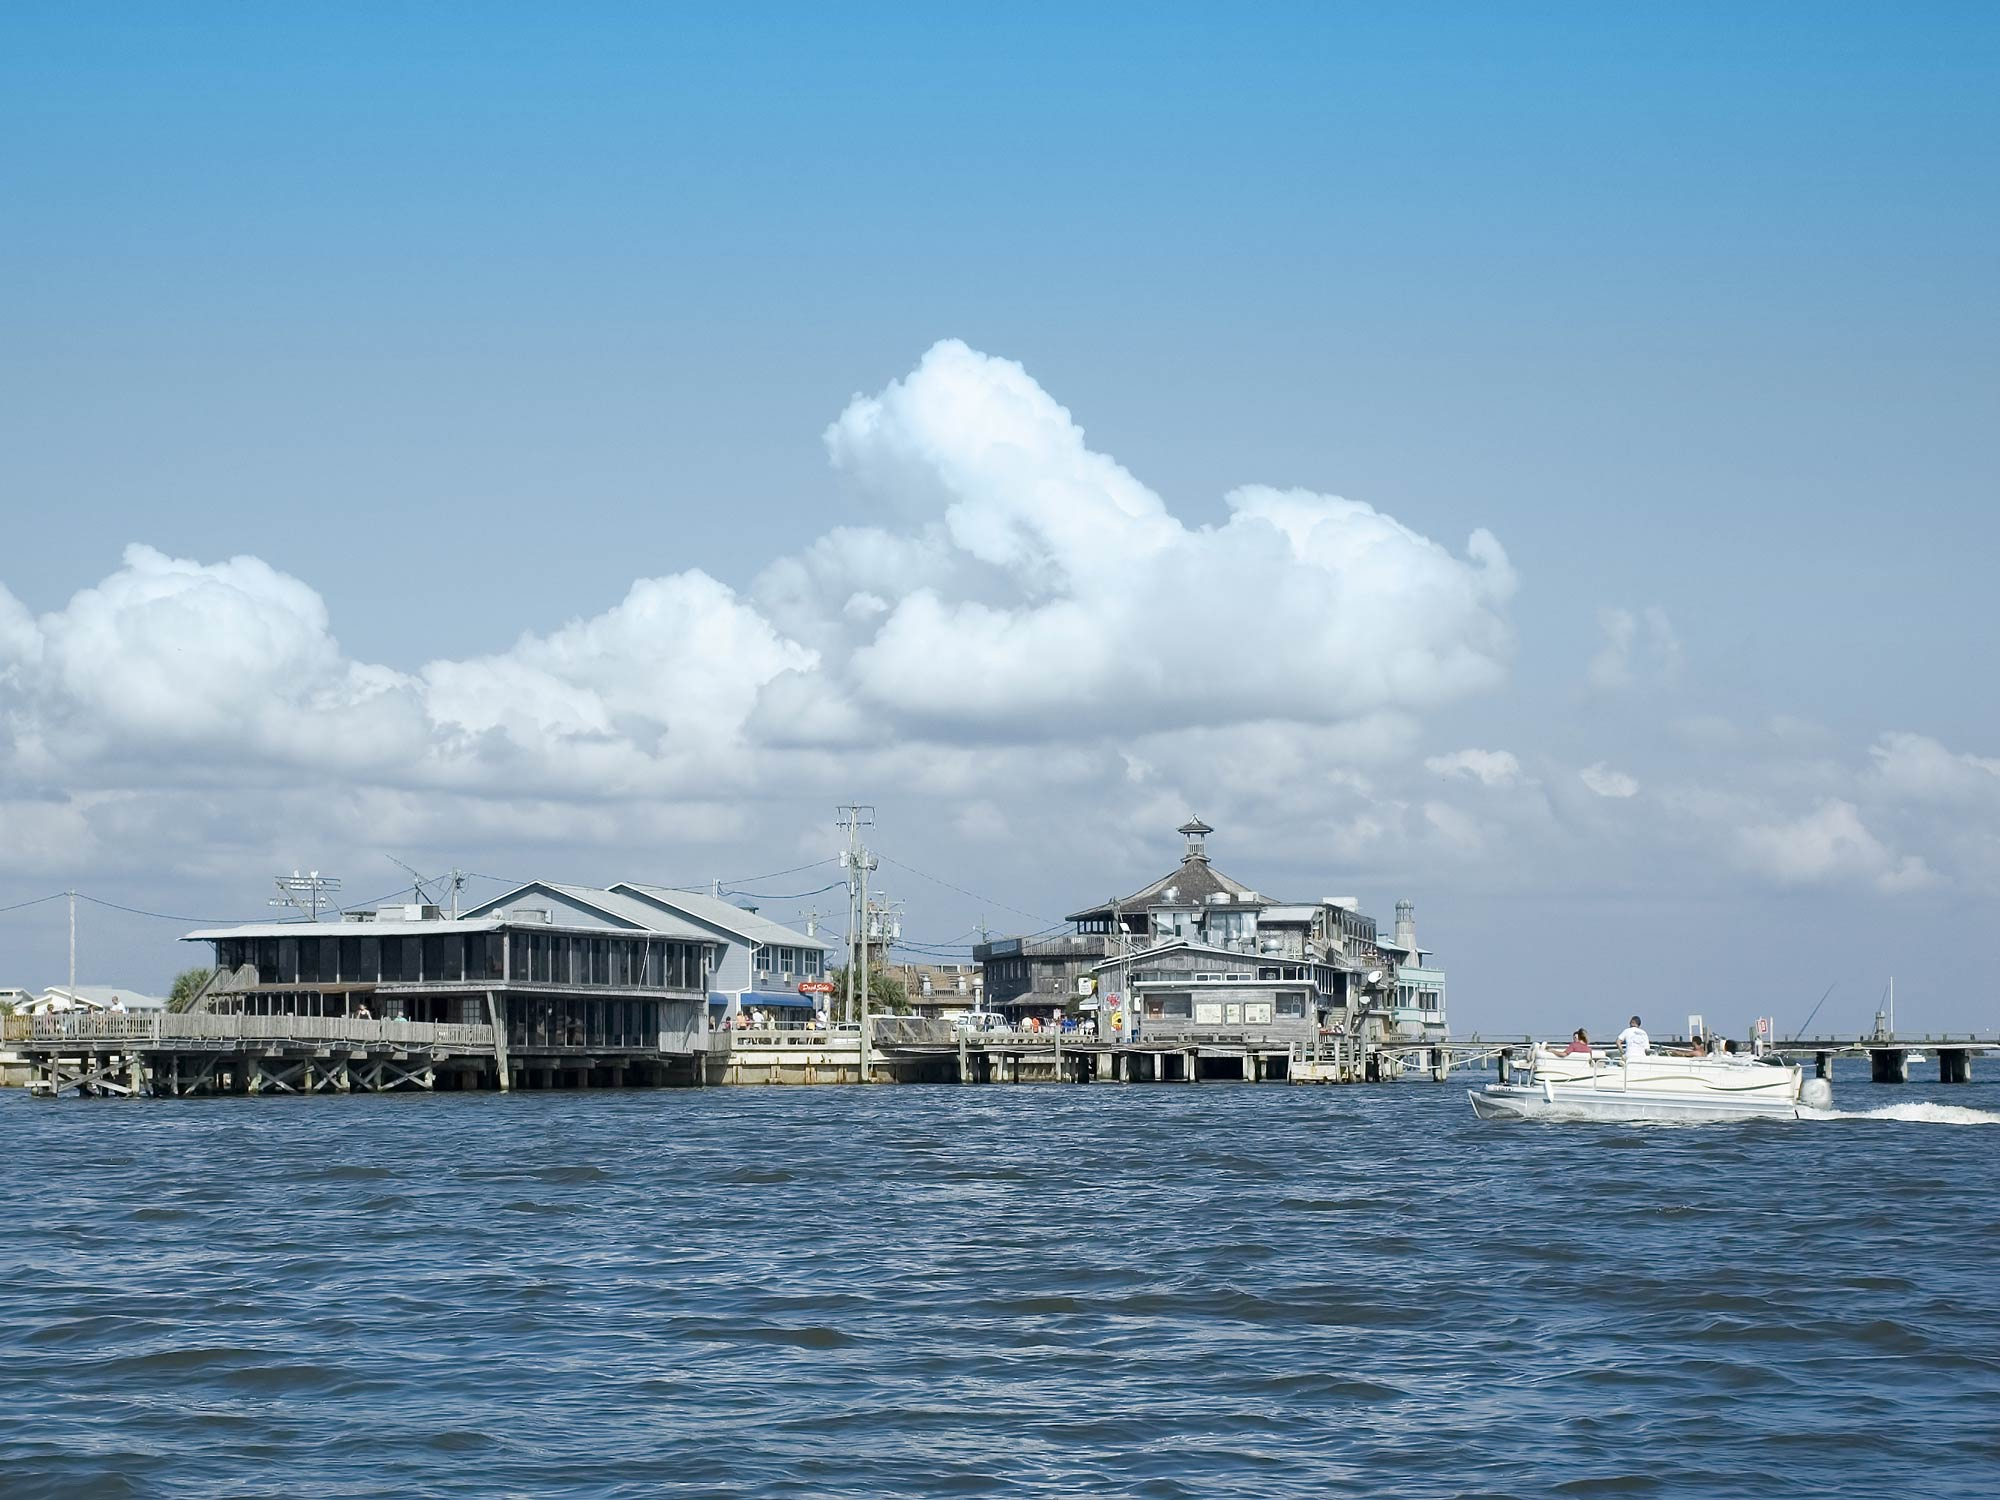 The waterfront at Cedar Key, Florida from the channel in the Gulf of Mexico